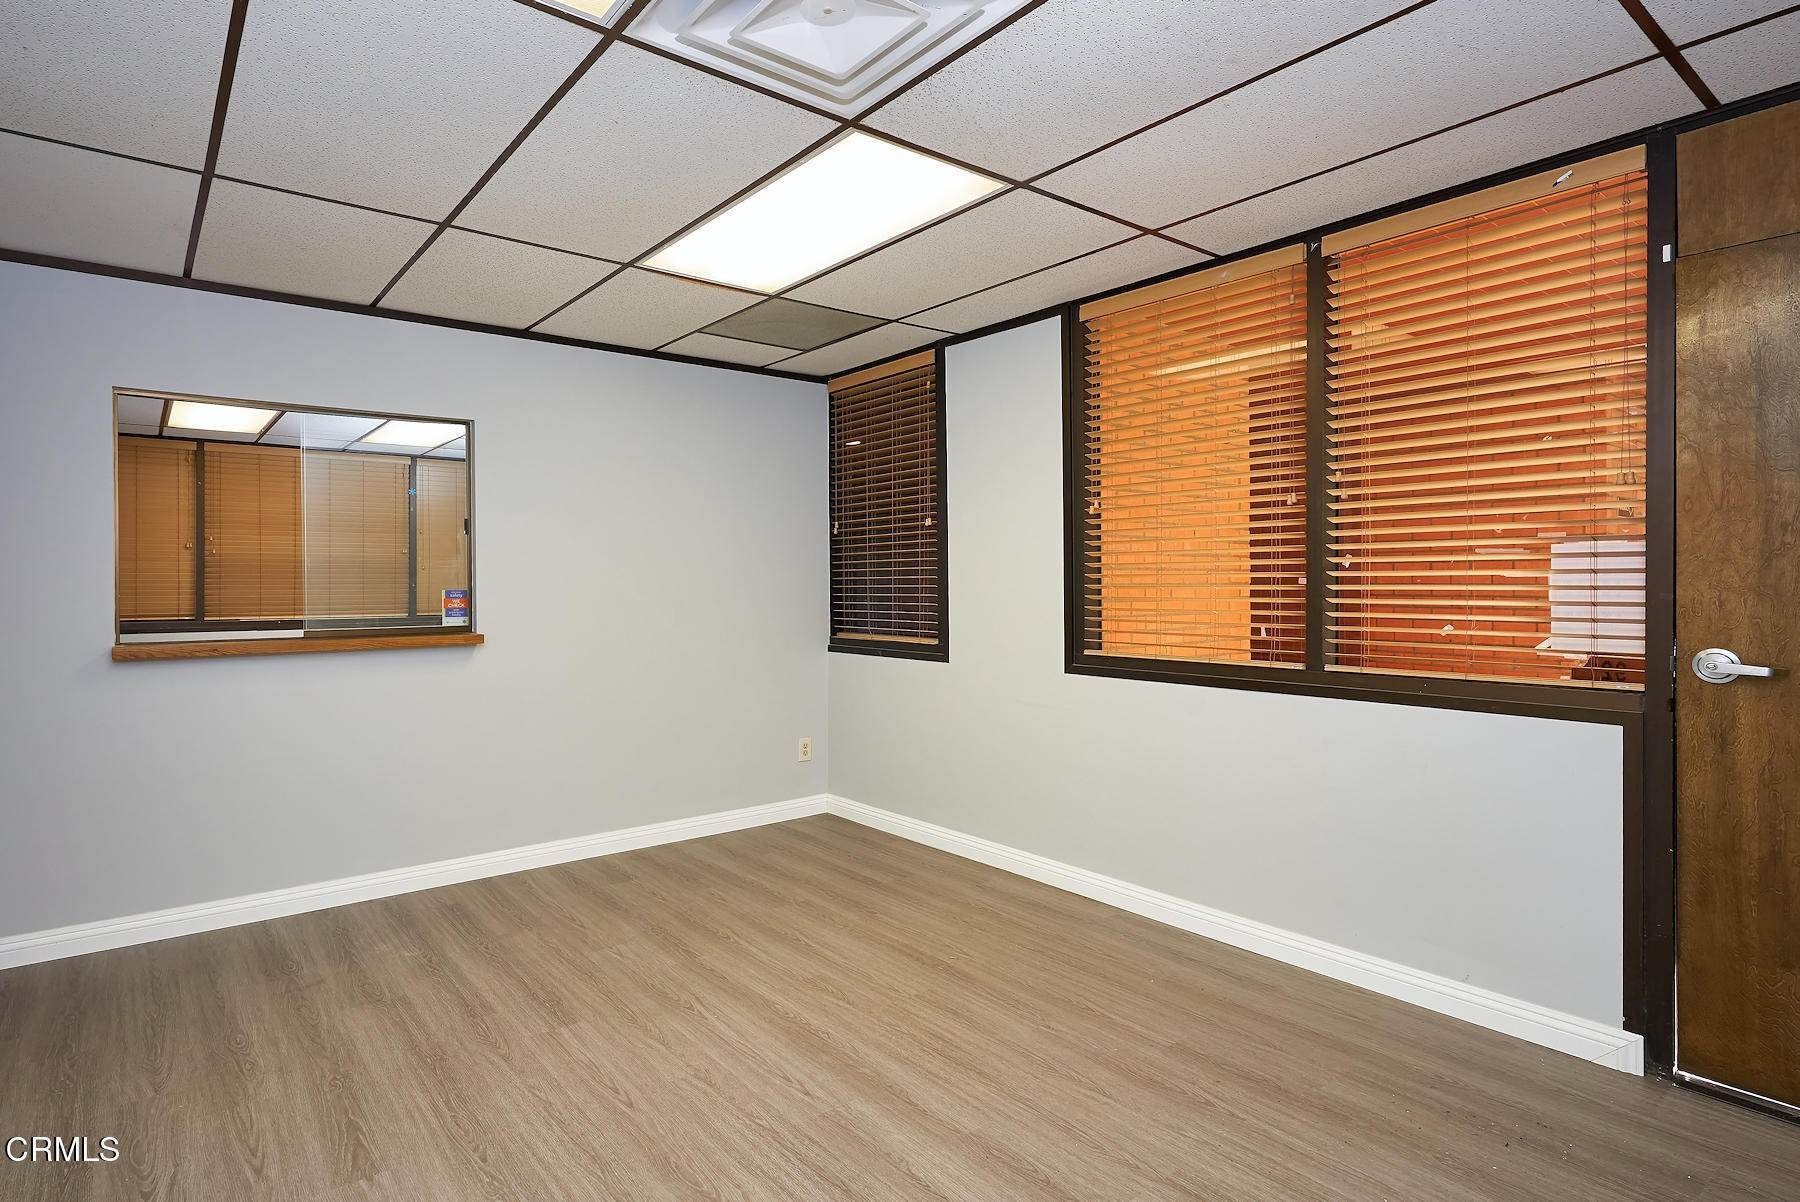 6. Offices for Sale at 921 West 7th Street Oxnard, California 93030 United States